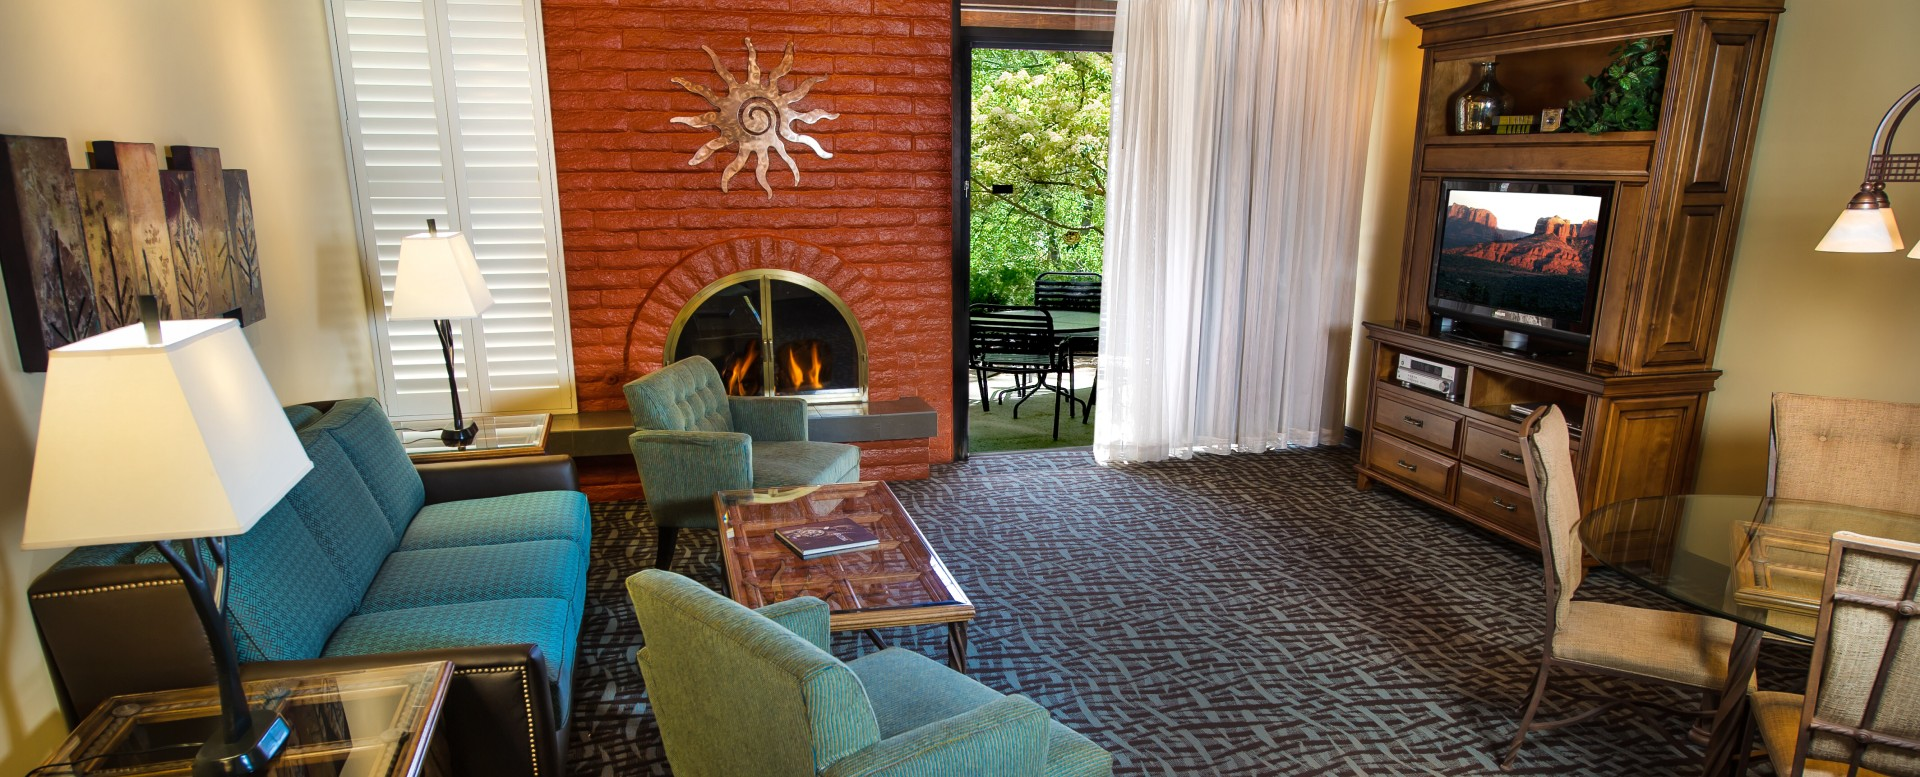 Best Western Plus Arroyo Roble Hotel - Villa Livingroom